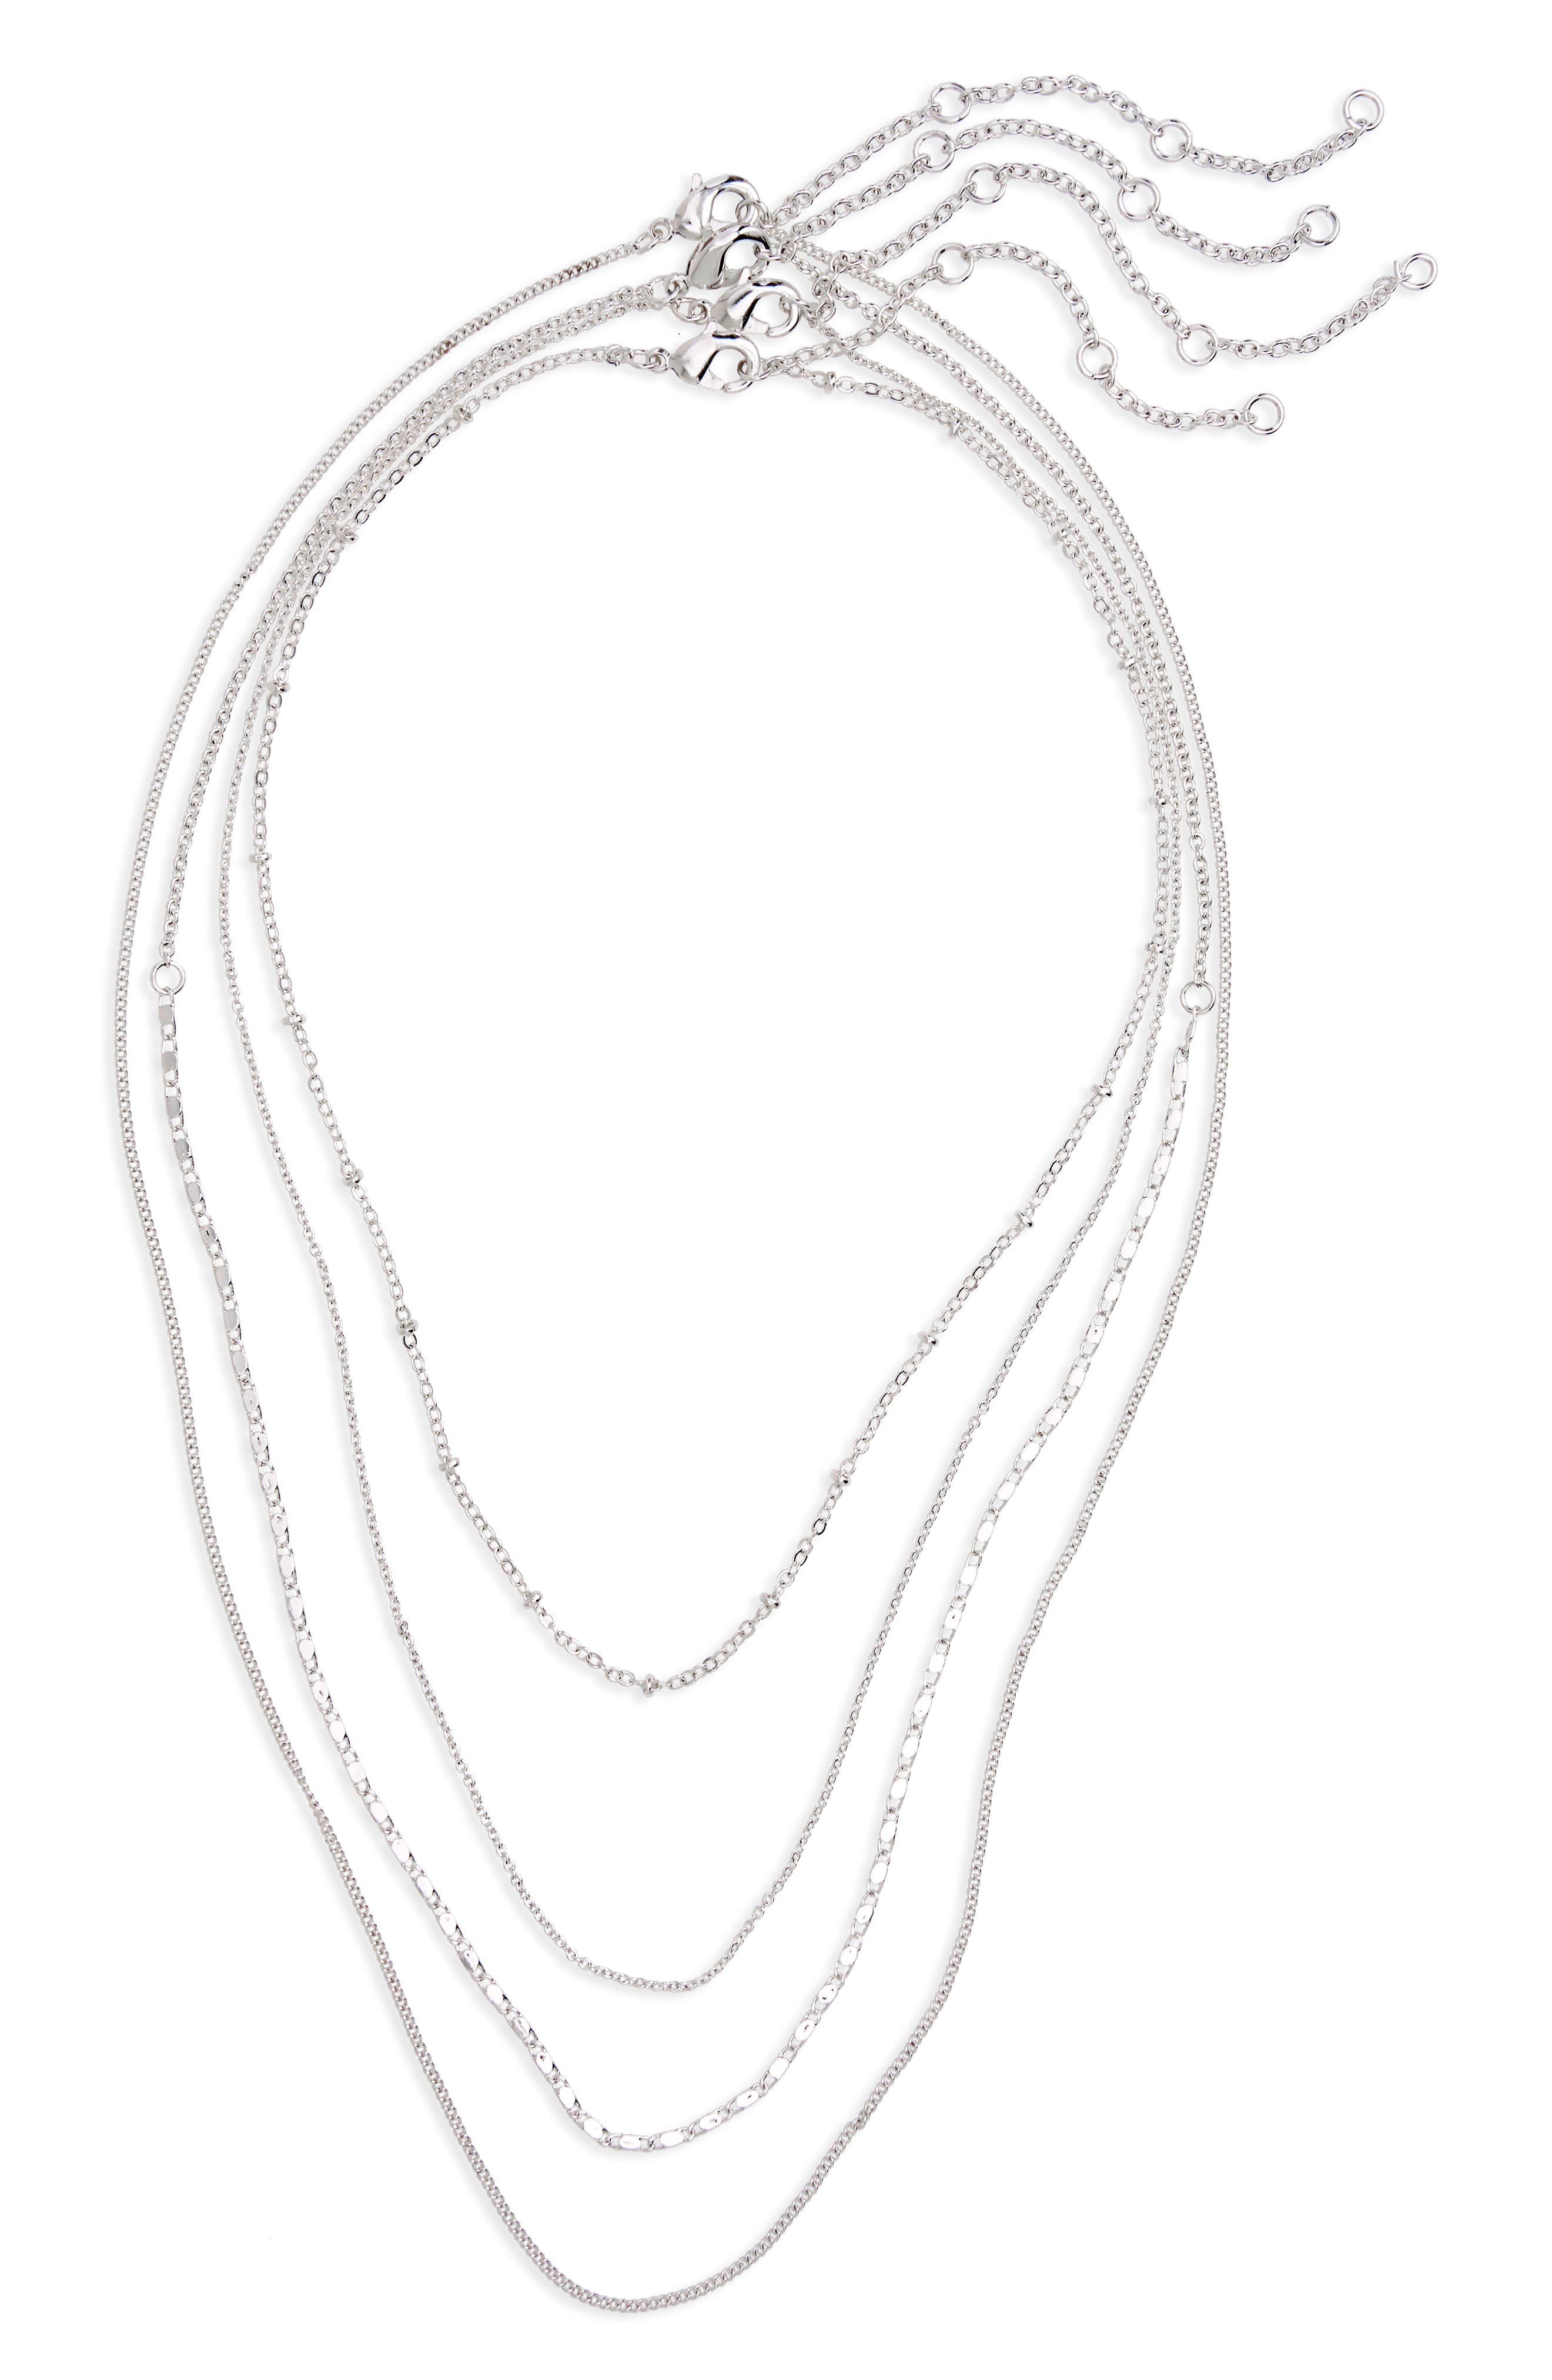 4-Pack Chain Necklaces,                         Main,                         color, Silver